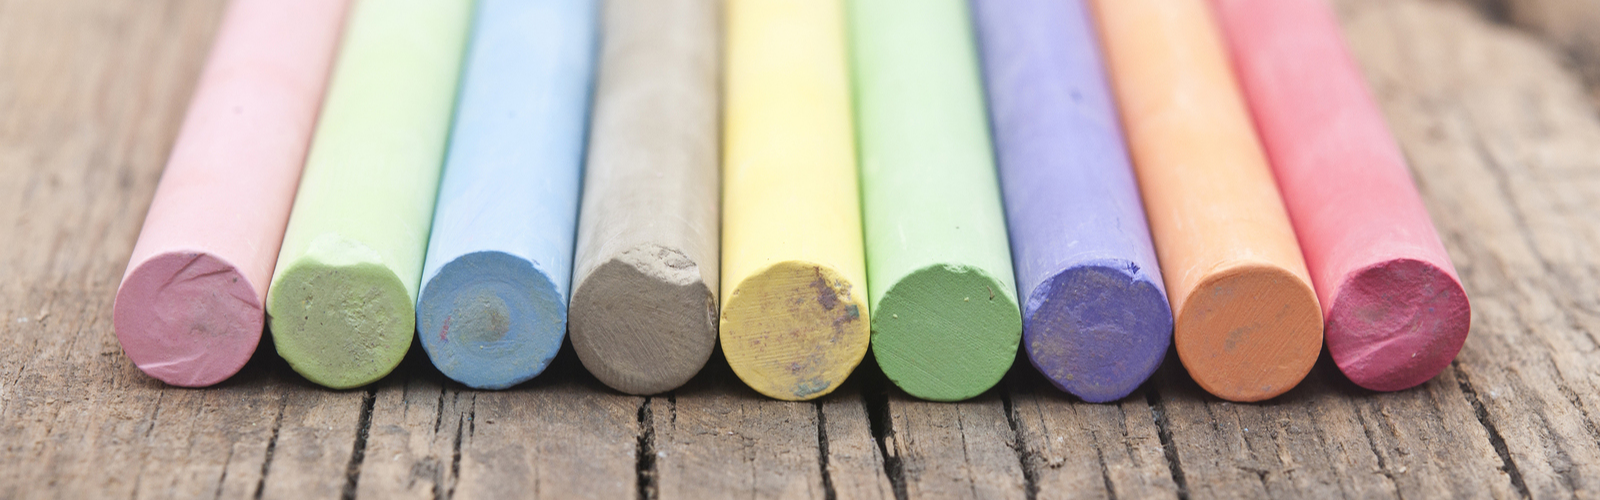 Colorful Chalk Sticks in a Row